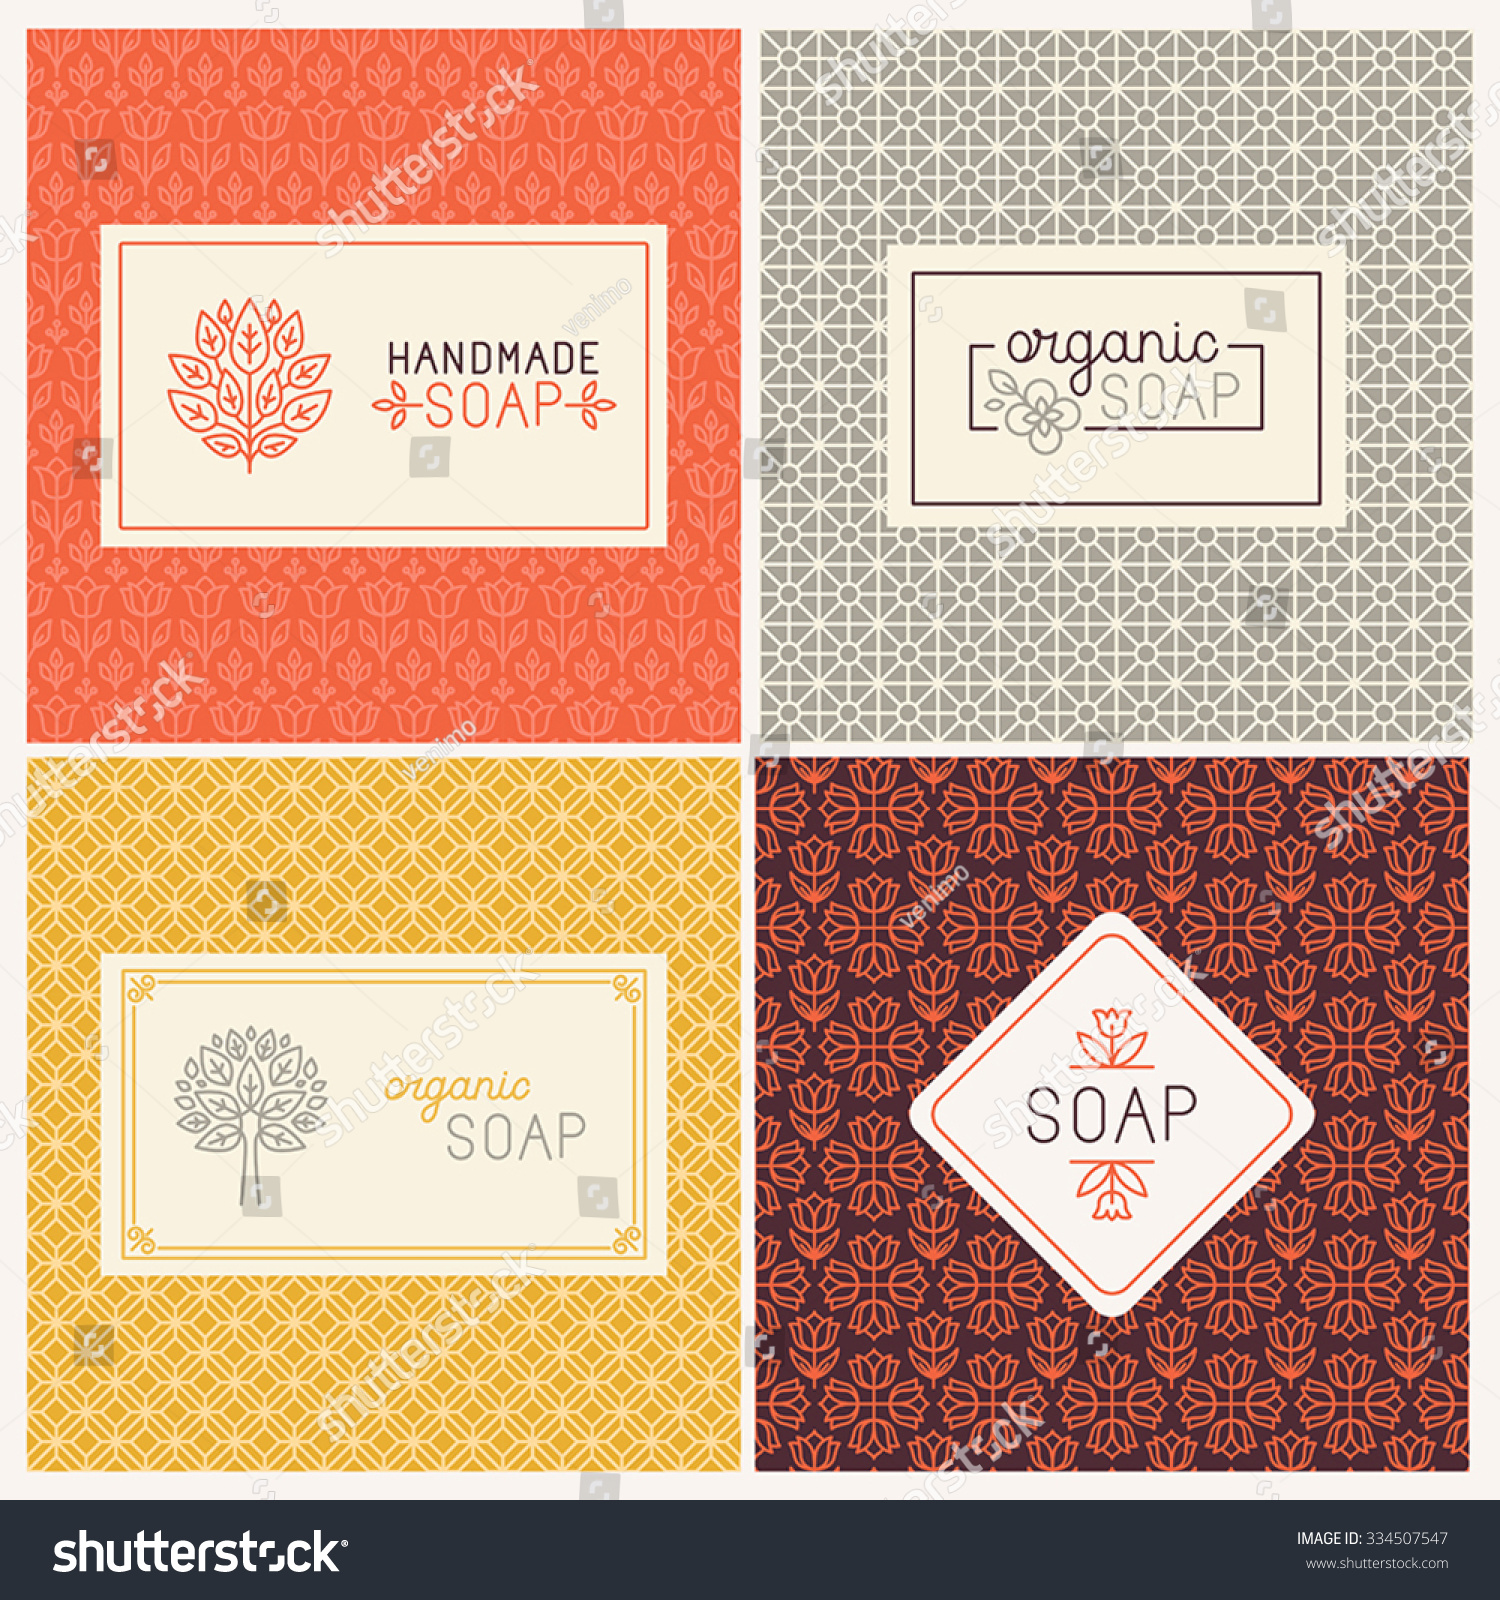 Soap Label Templates. printable oval labels free template set ...